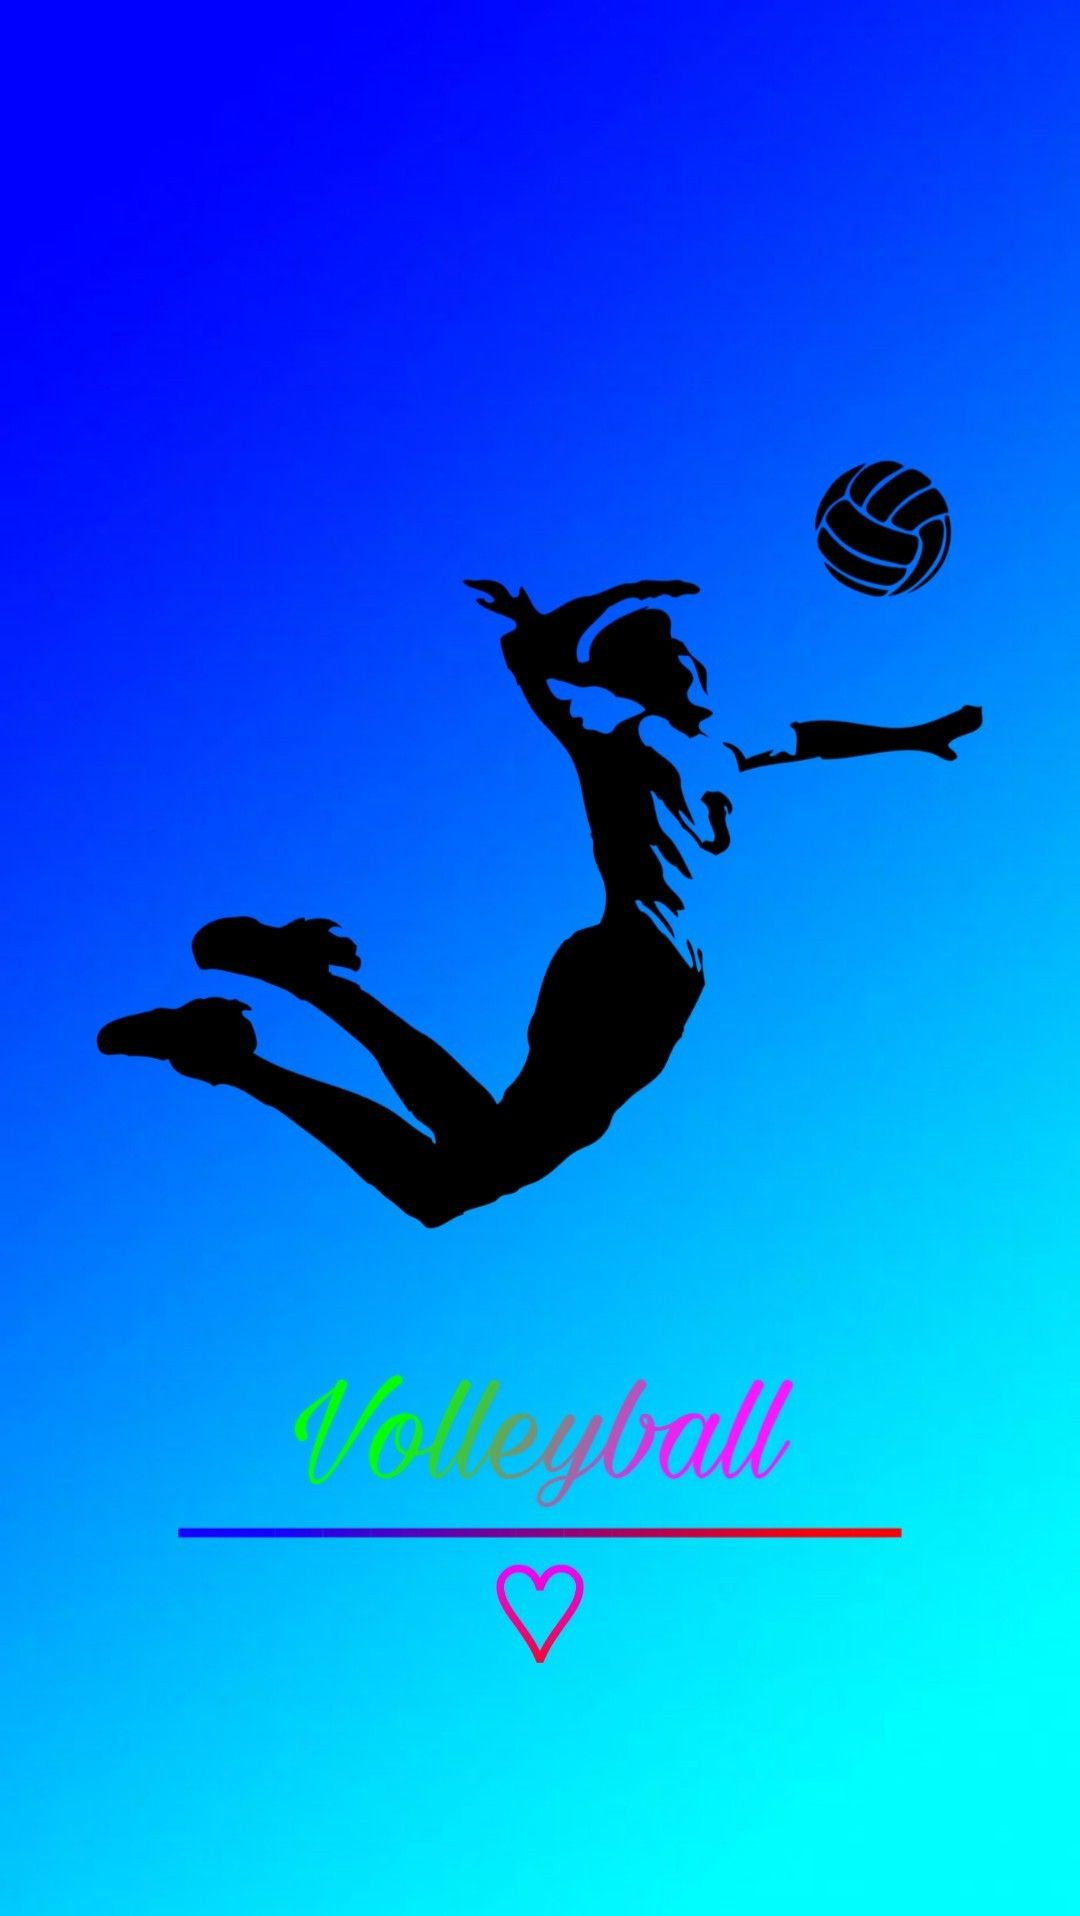 Volleyball Wallpaper Volleyball Wallpaper Volleyball Volleyball Images